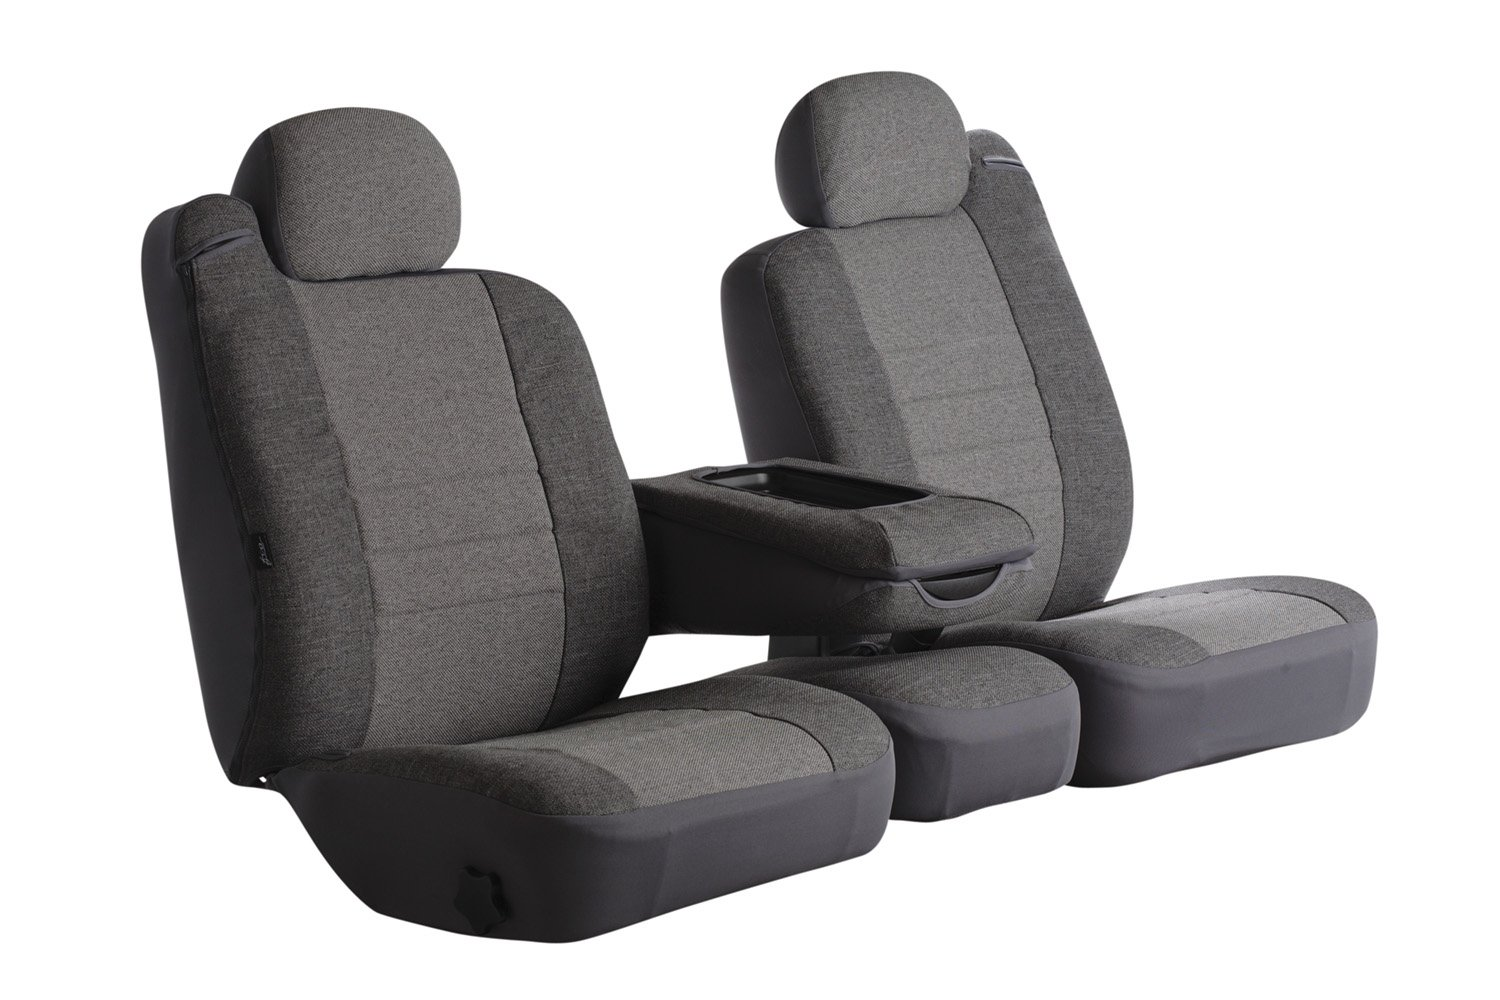 Leatherette Solid Black Fia SL68-29 BLK//BLK Custom Fit Front Seat Cover Bucket Seats